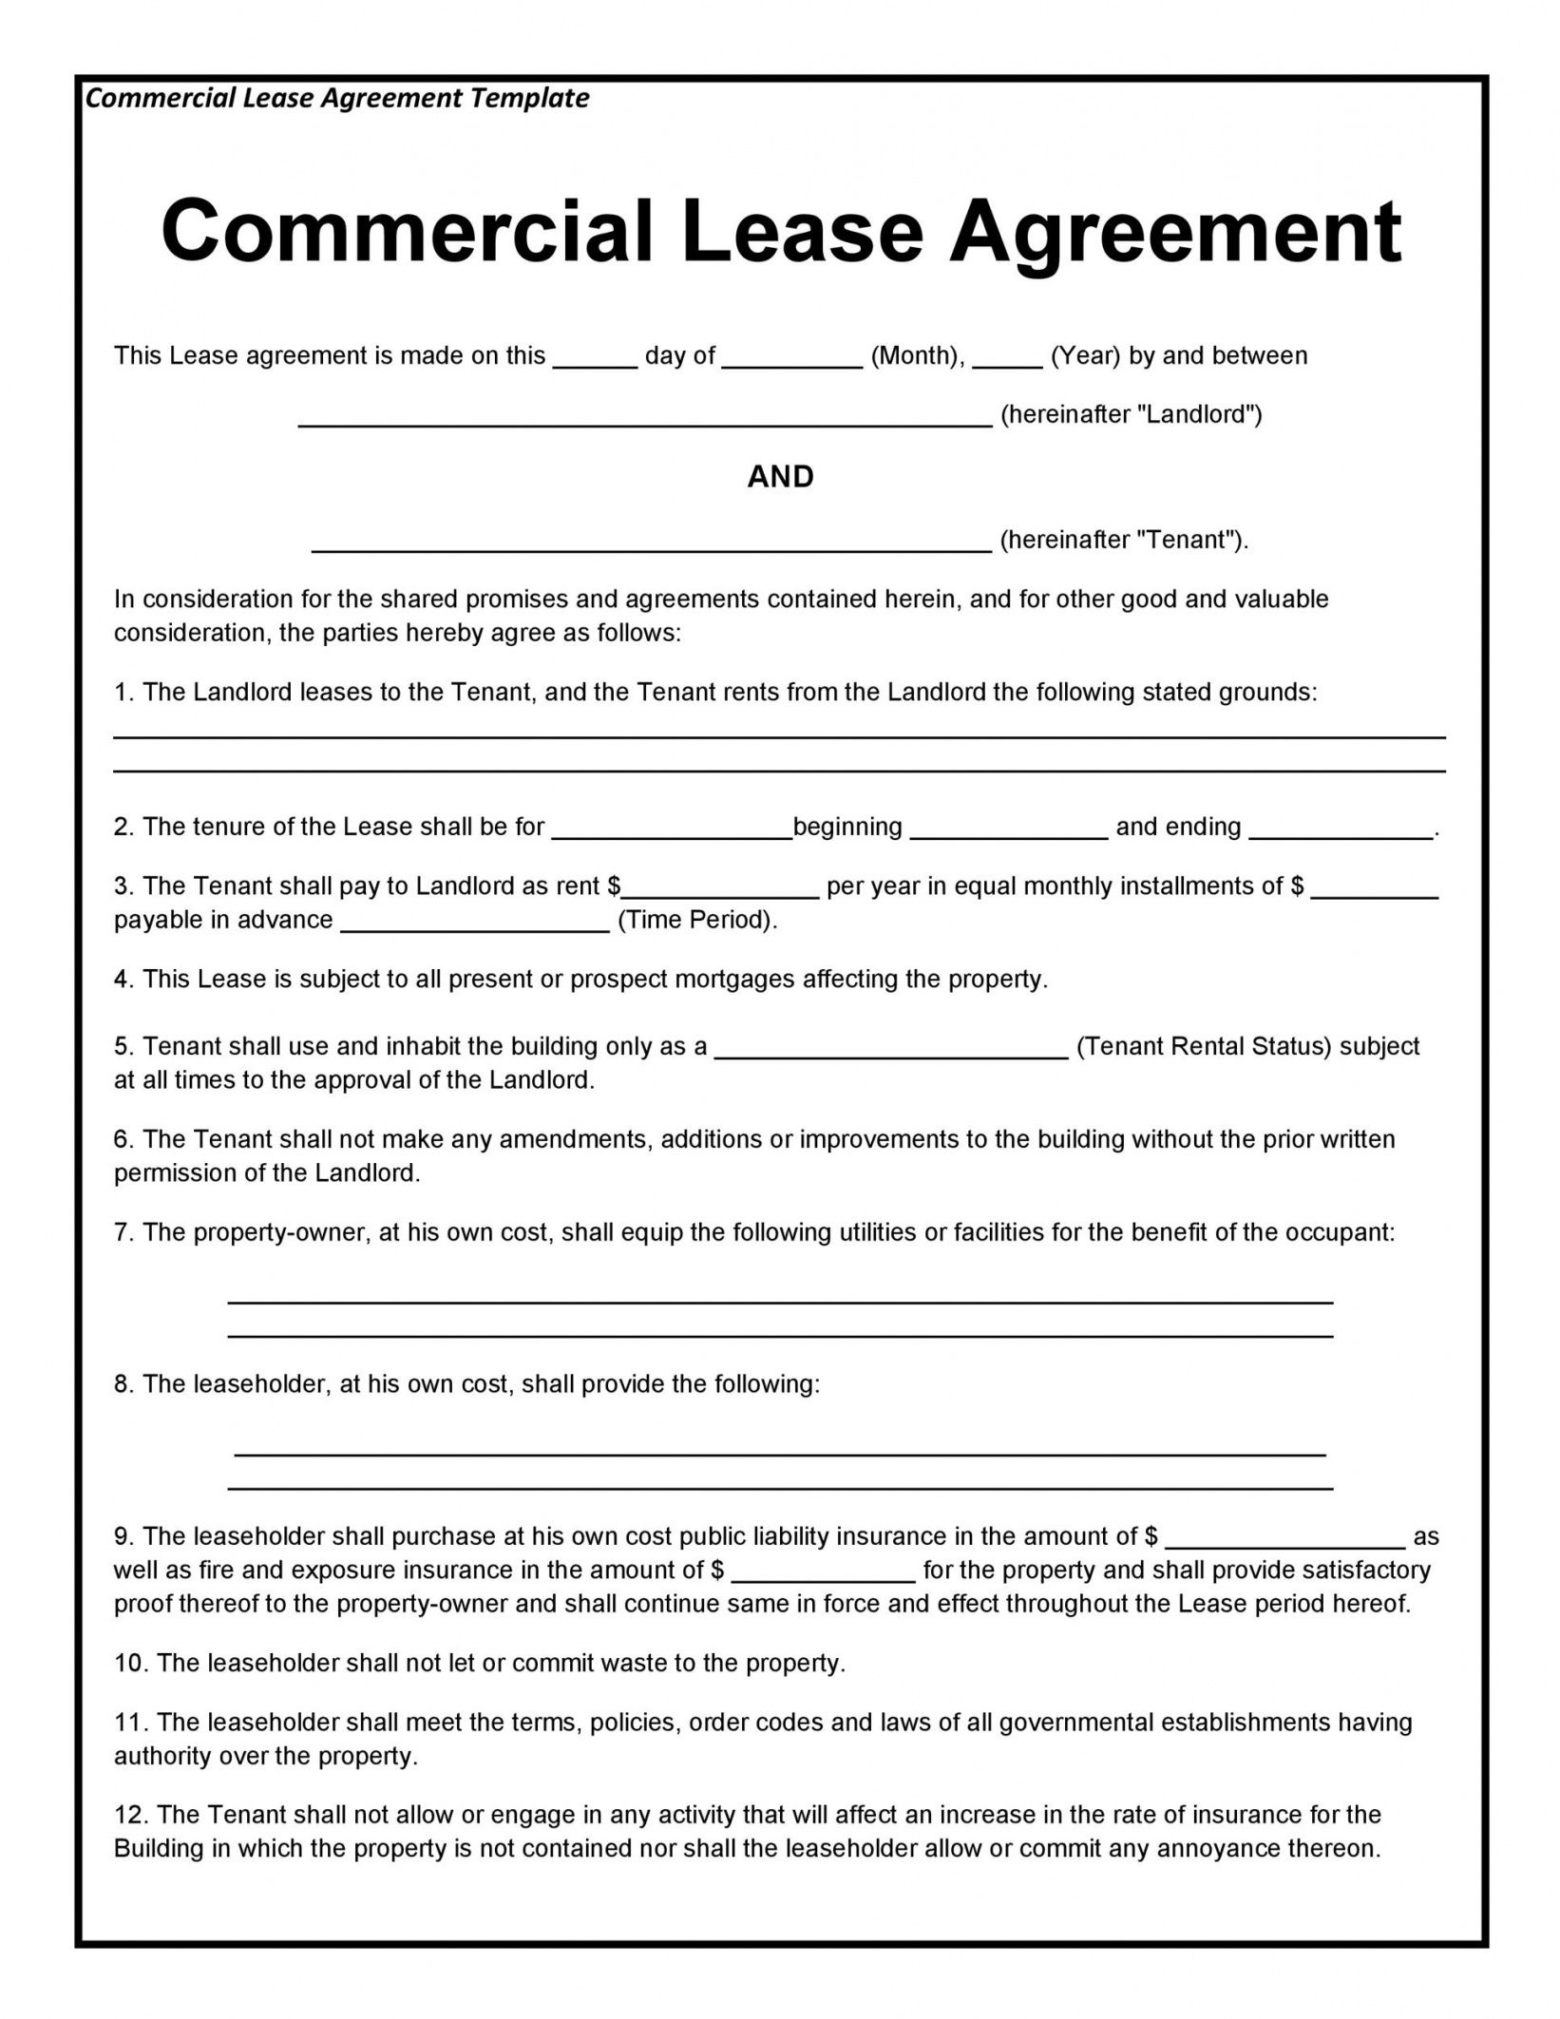 26 free commercial lease agreement templates  templatelab real estate lease agreement template pdf